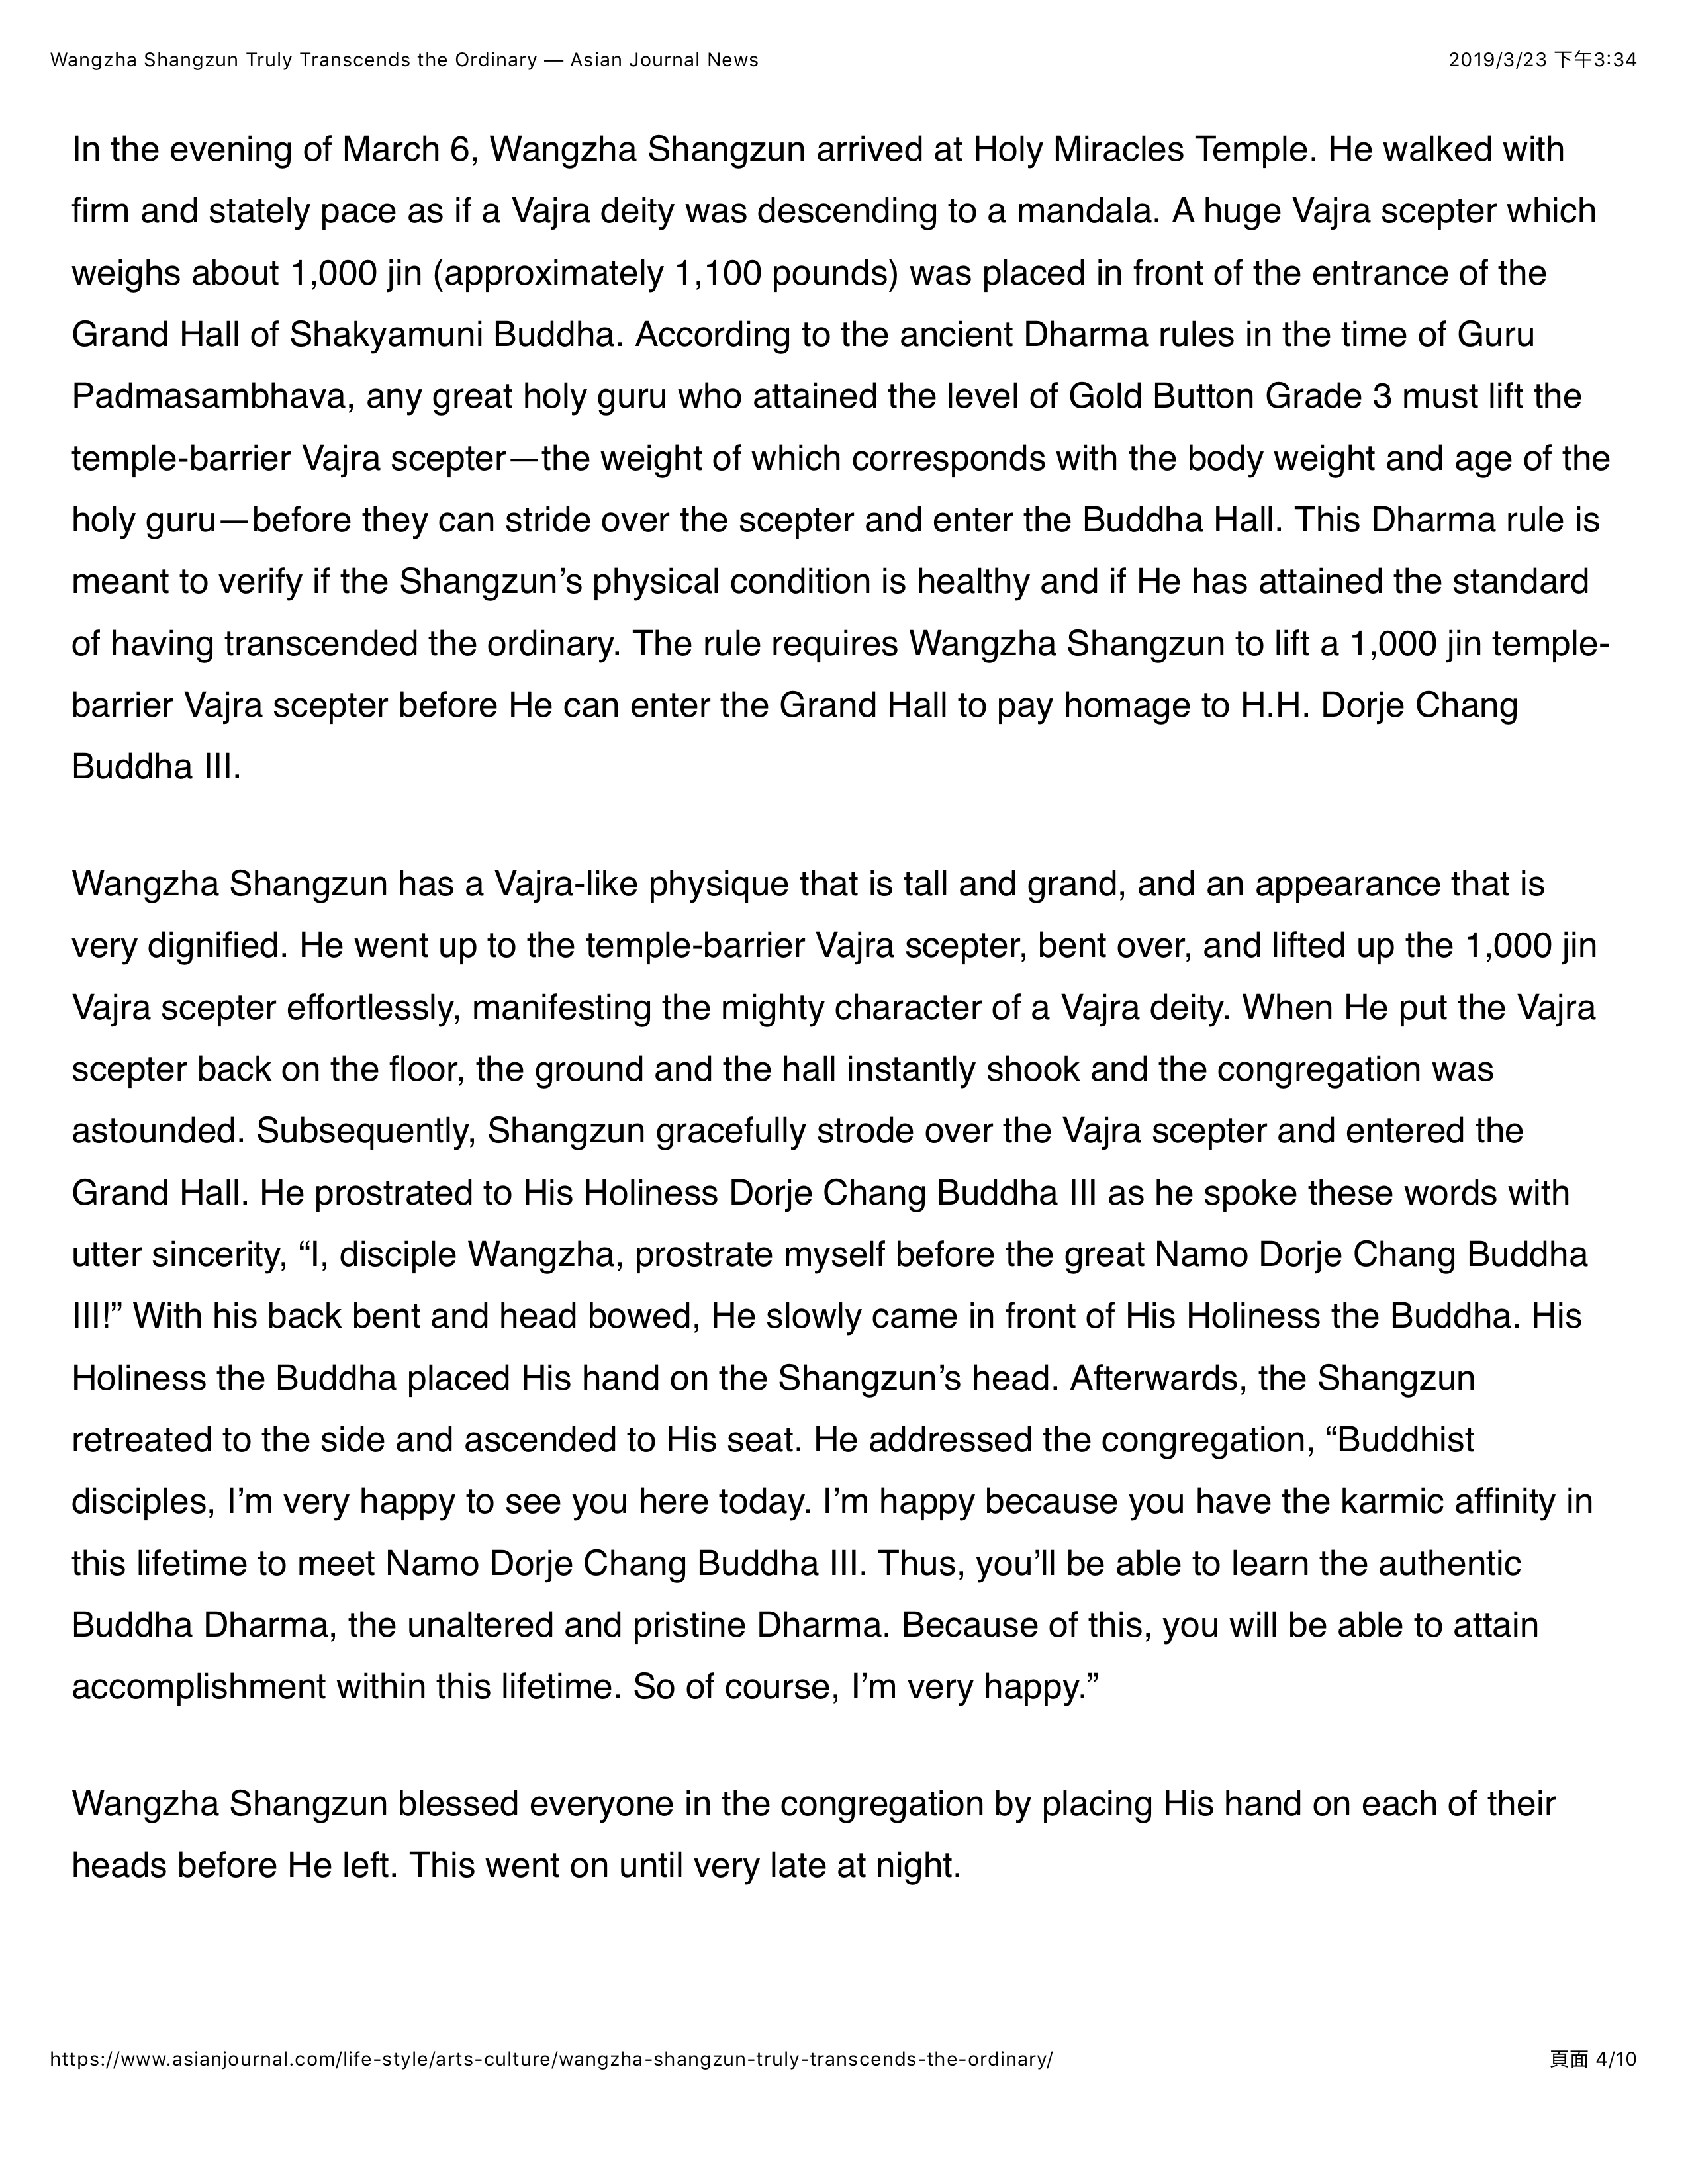 3 Wangzha Shangzun Truly Transcends the Ordinary